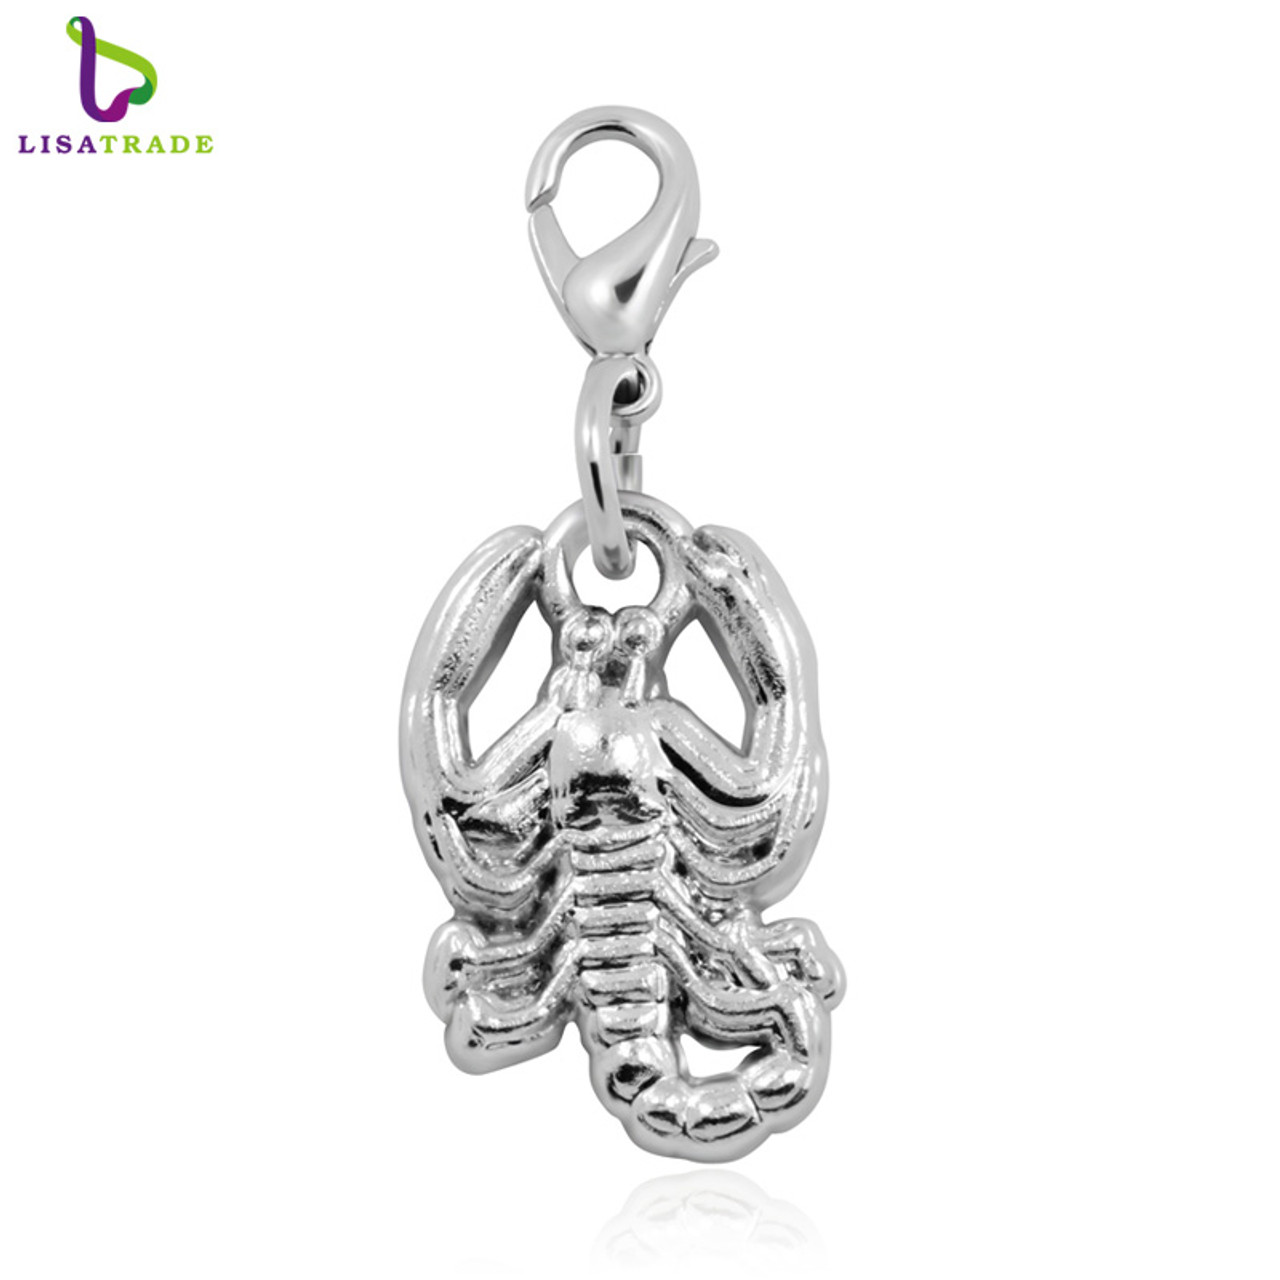 Wholesale Stainless Steel Silver Shrimp Charms DIY Pendents for Jewelry Making